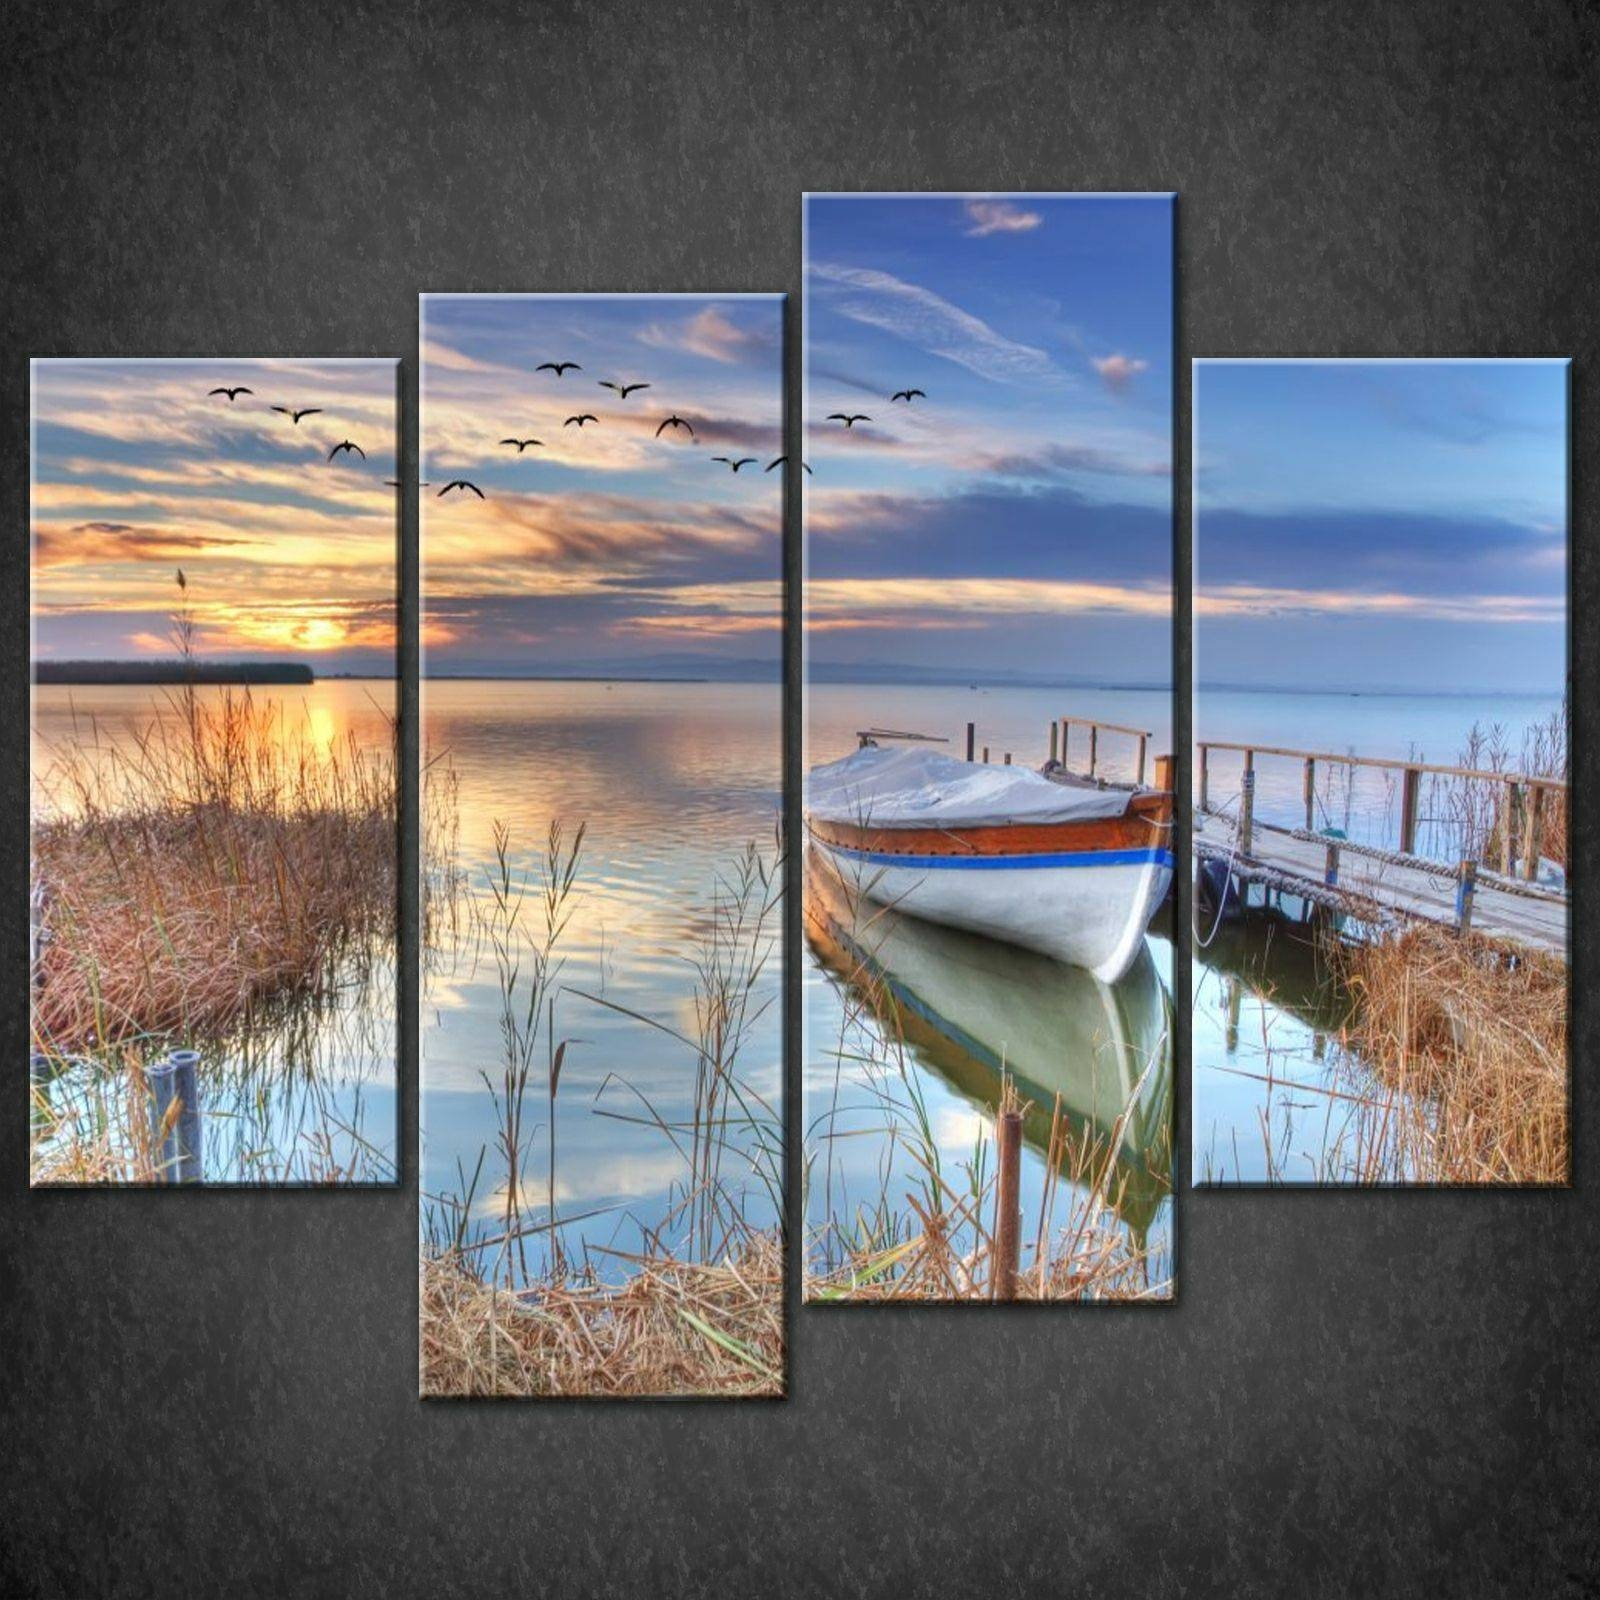 Lake Boat Blue Split Canvas Wall Art Pictures Prints Larger Sizes Intended For Most Recent Boat Wall Art (Gallery 4 of 20)